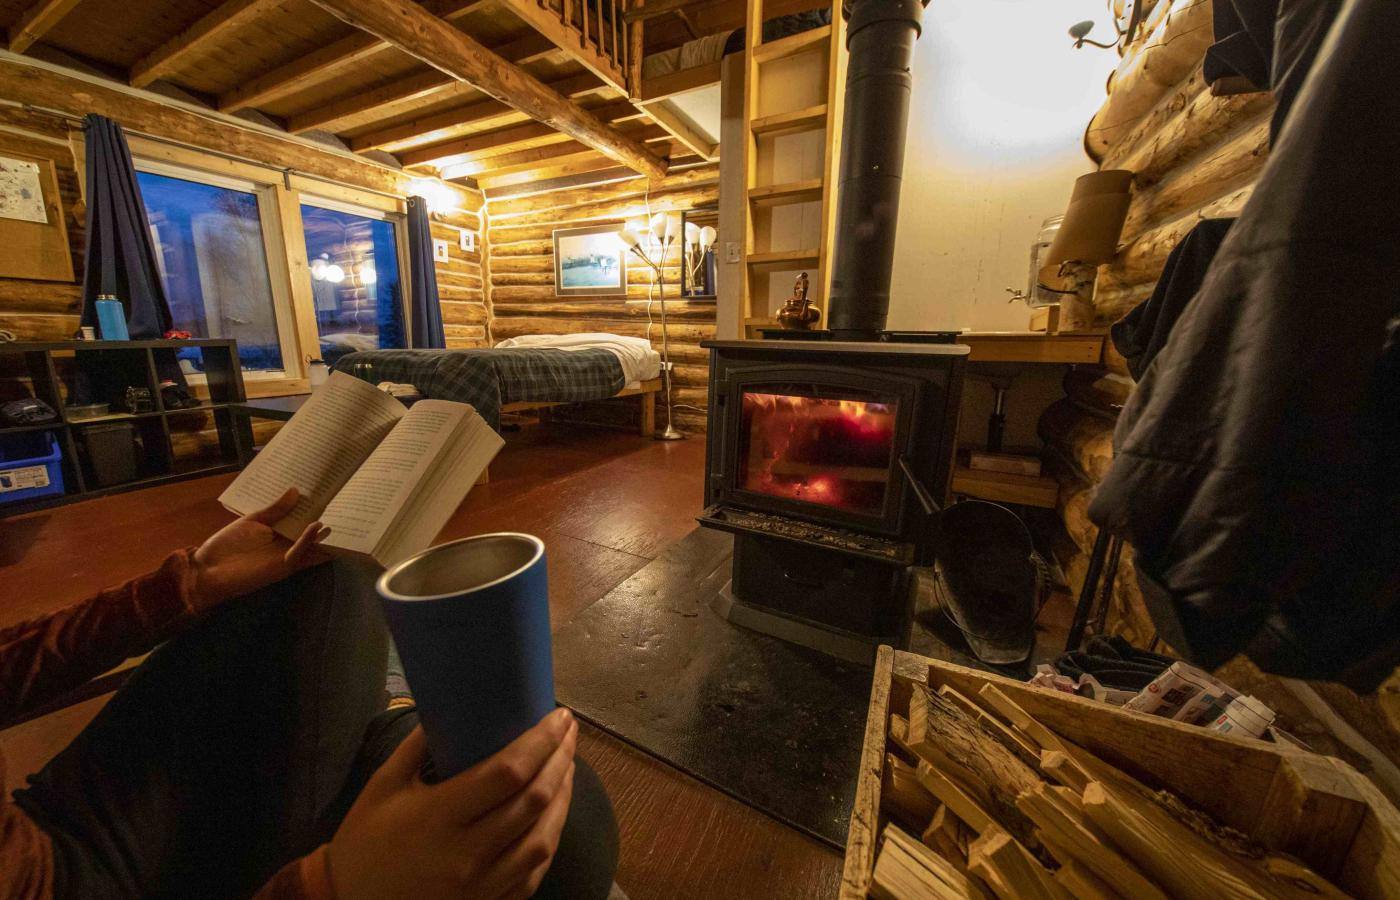 A person reads by a woodstove fire at beautiful Blachford Lake Lodge in the Northwest Territories